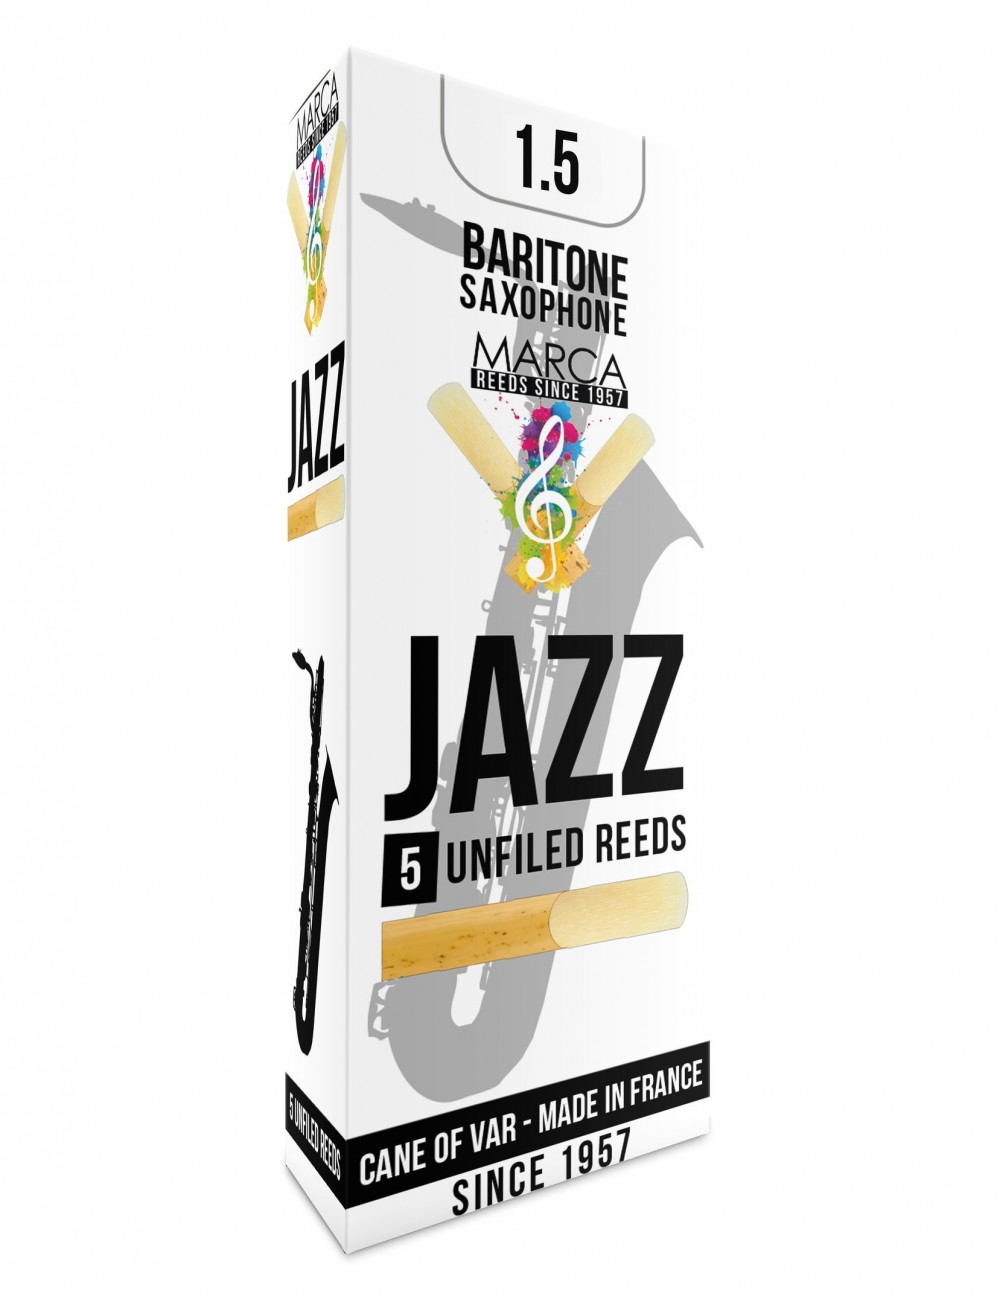 5 REEDS MARCA JAZZ UNFILED BARITONE SAXOPHONE 1.5